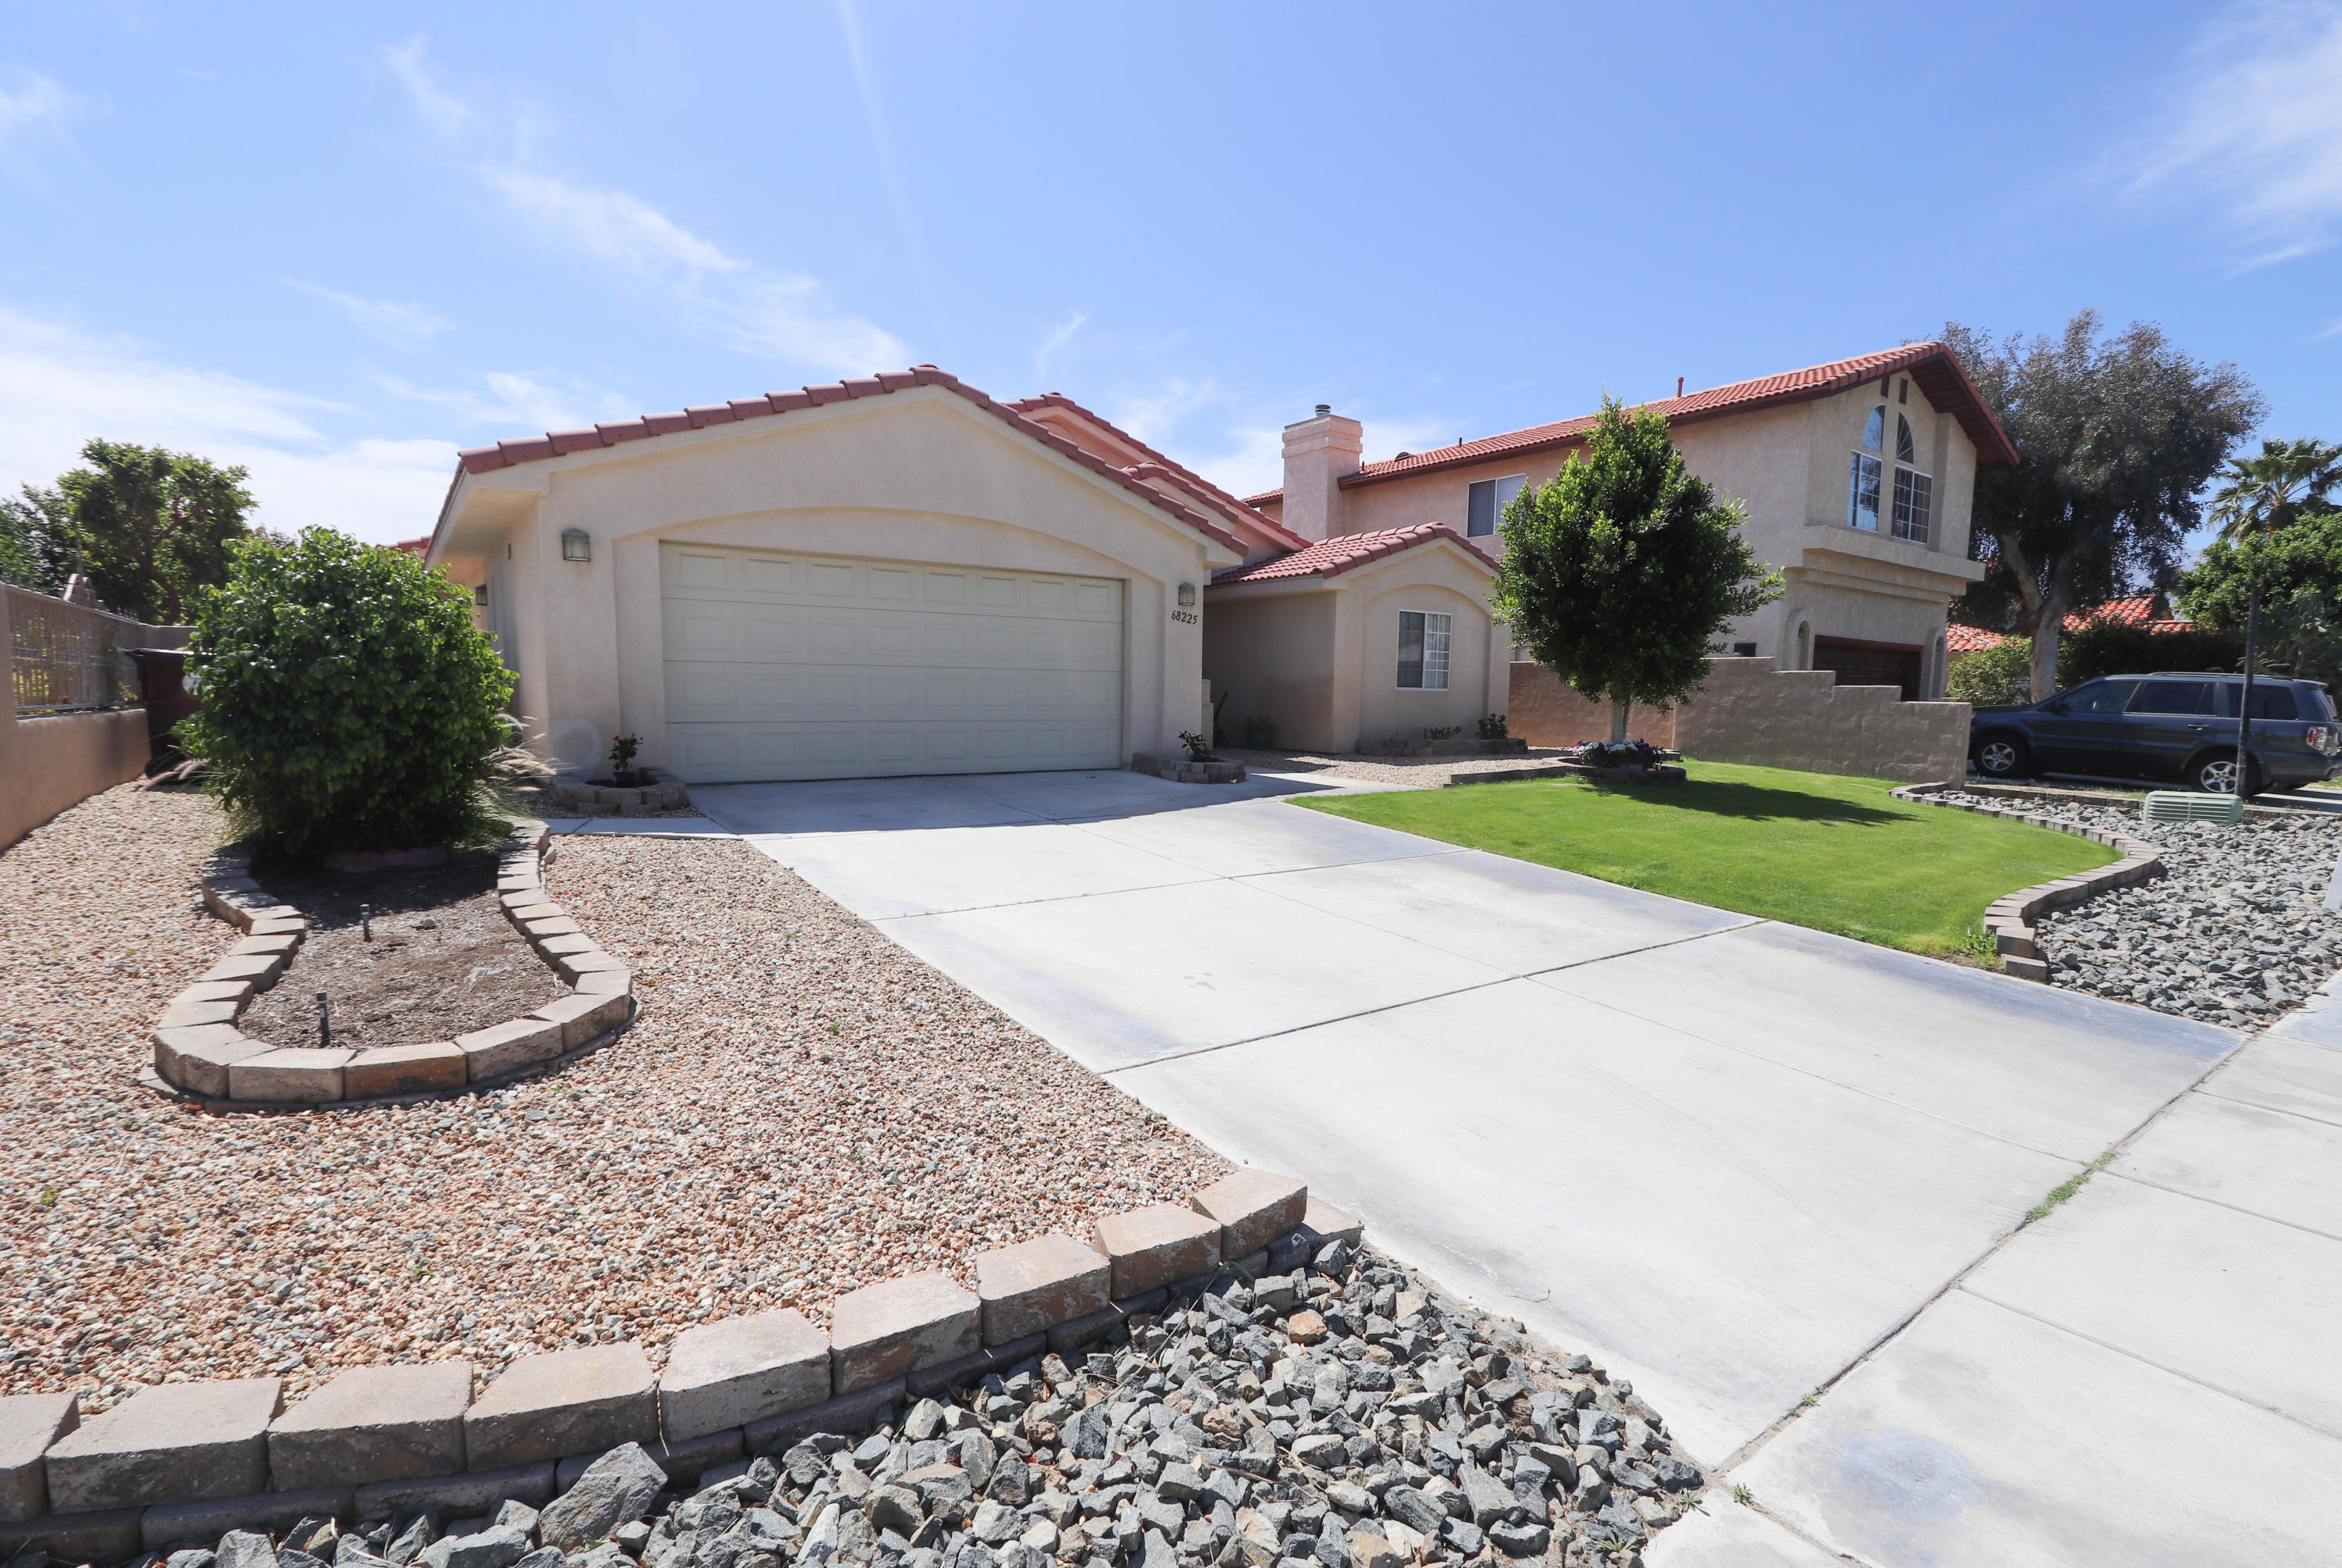 68225 Tortuga Road, Cathedral City, California 92234, 4 Bedrooms Bedrooms, ,2 BathroomsBathrooms,Residential,For Sale,68225 Tortuga Road,219041454